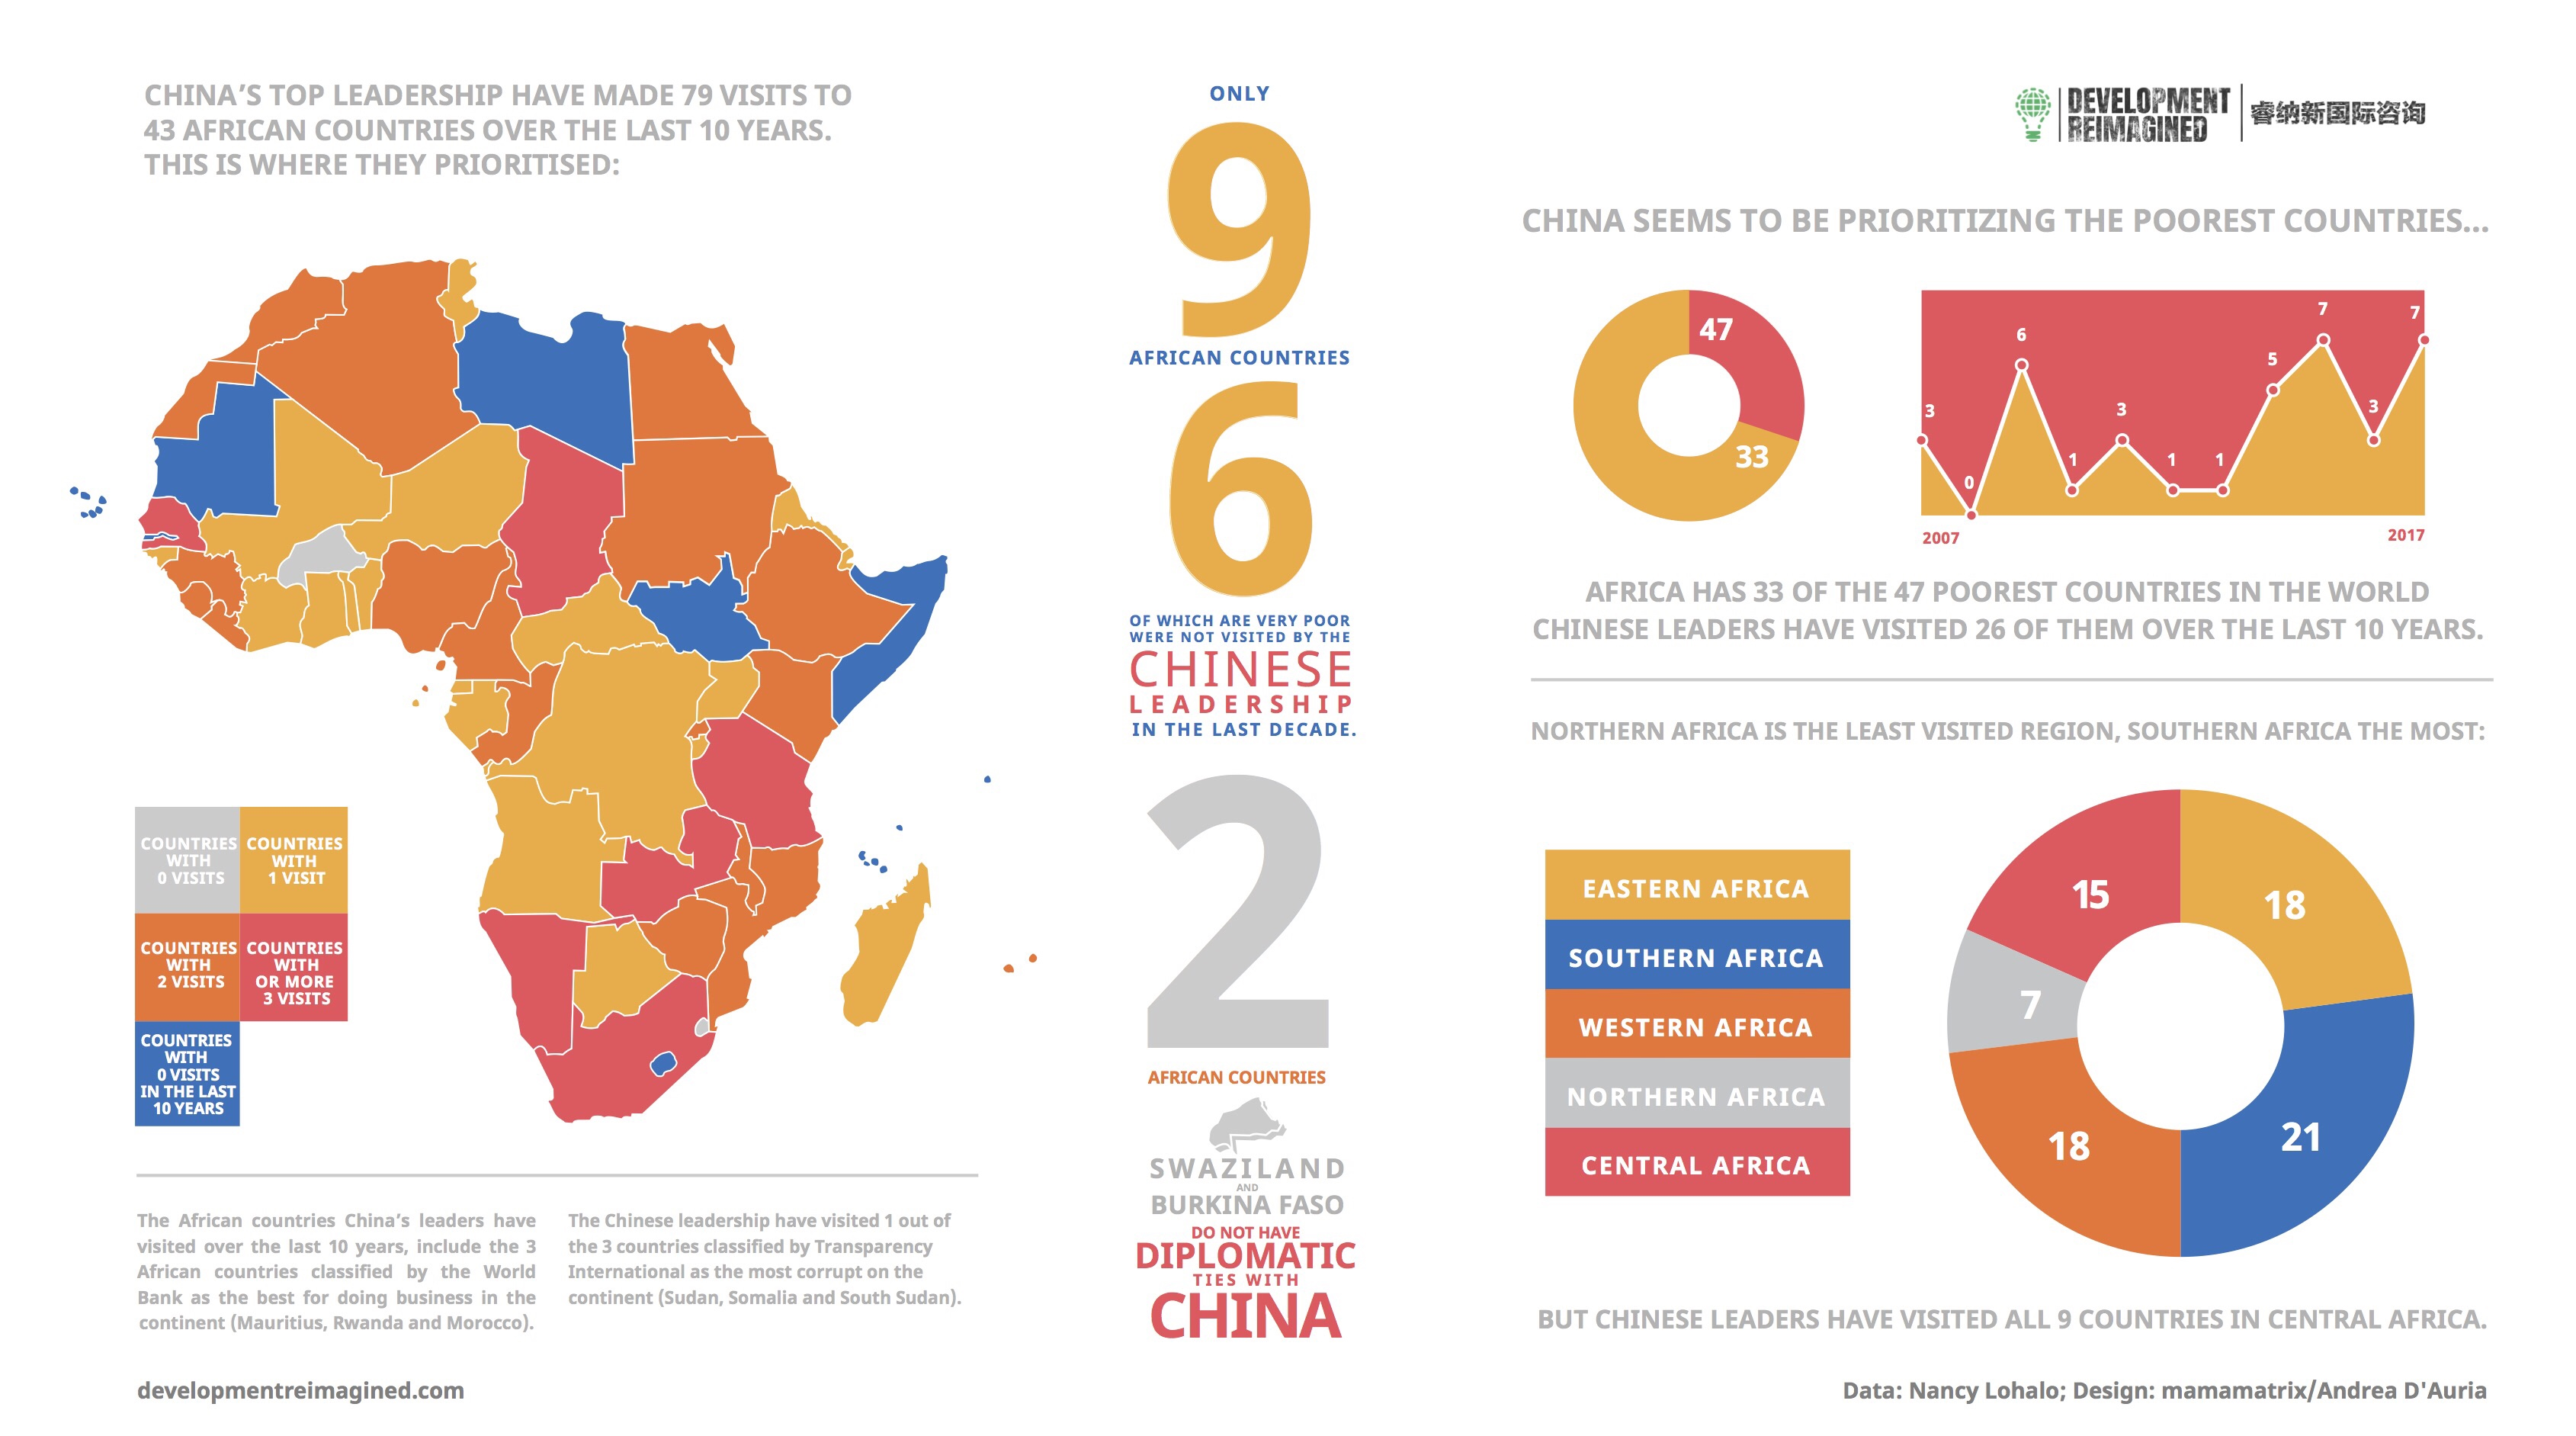 Who Does China Prioritise Our First Infographic Sheds